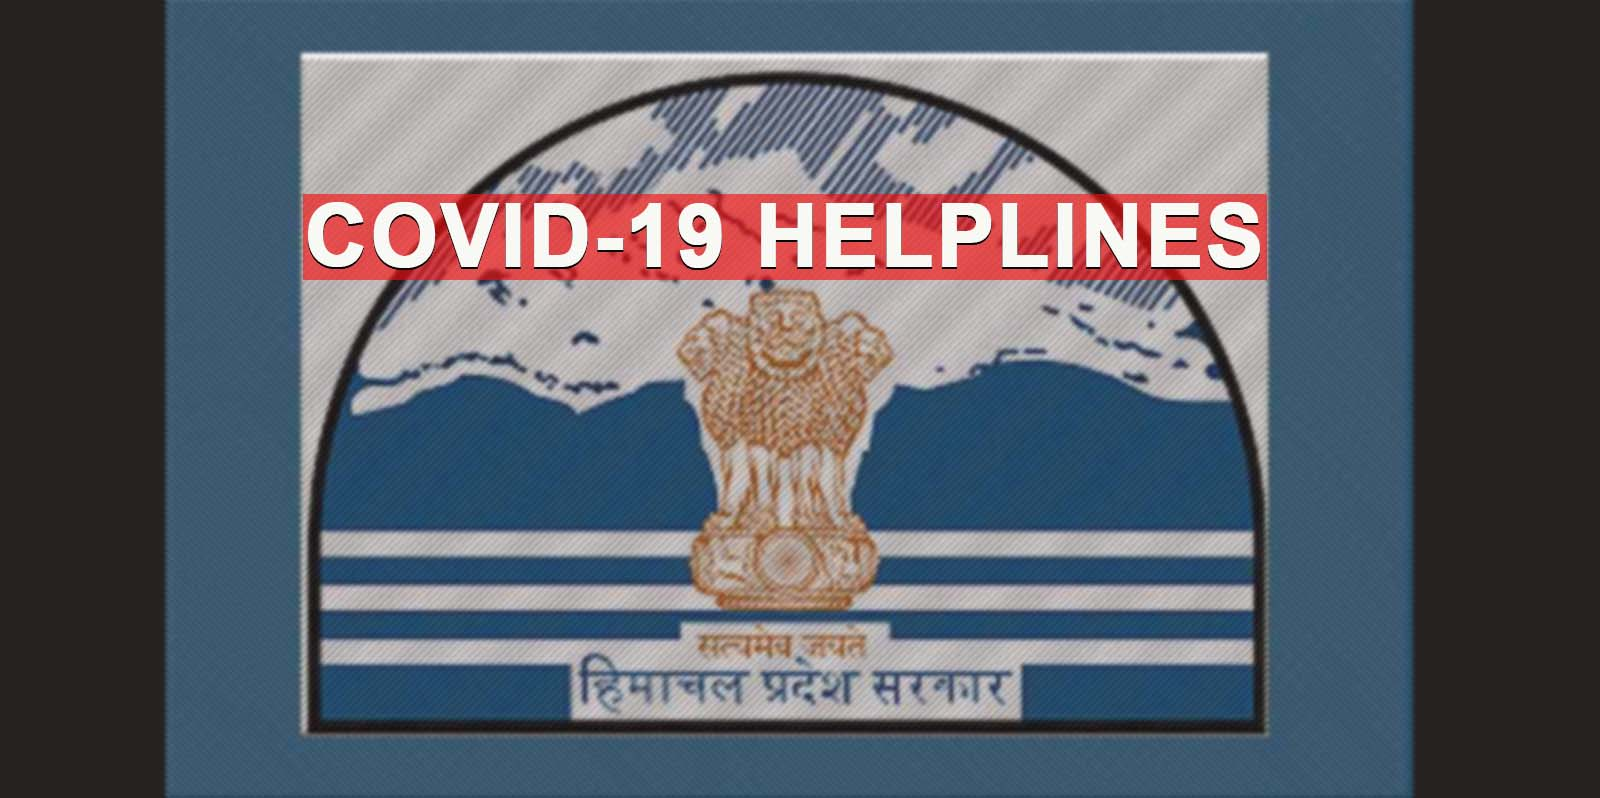 HP Helpline numbers for Medicine Delivery